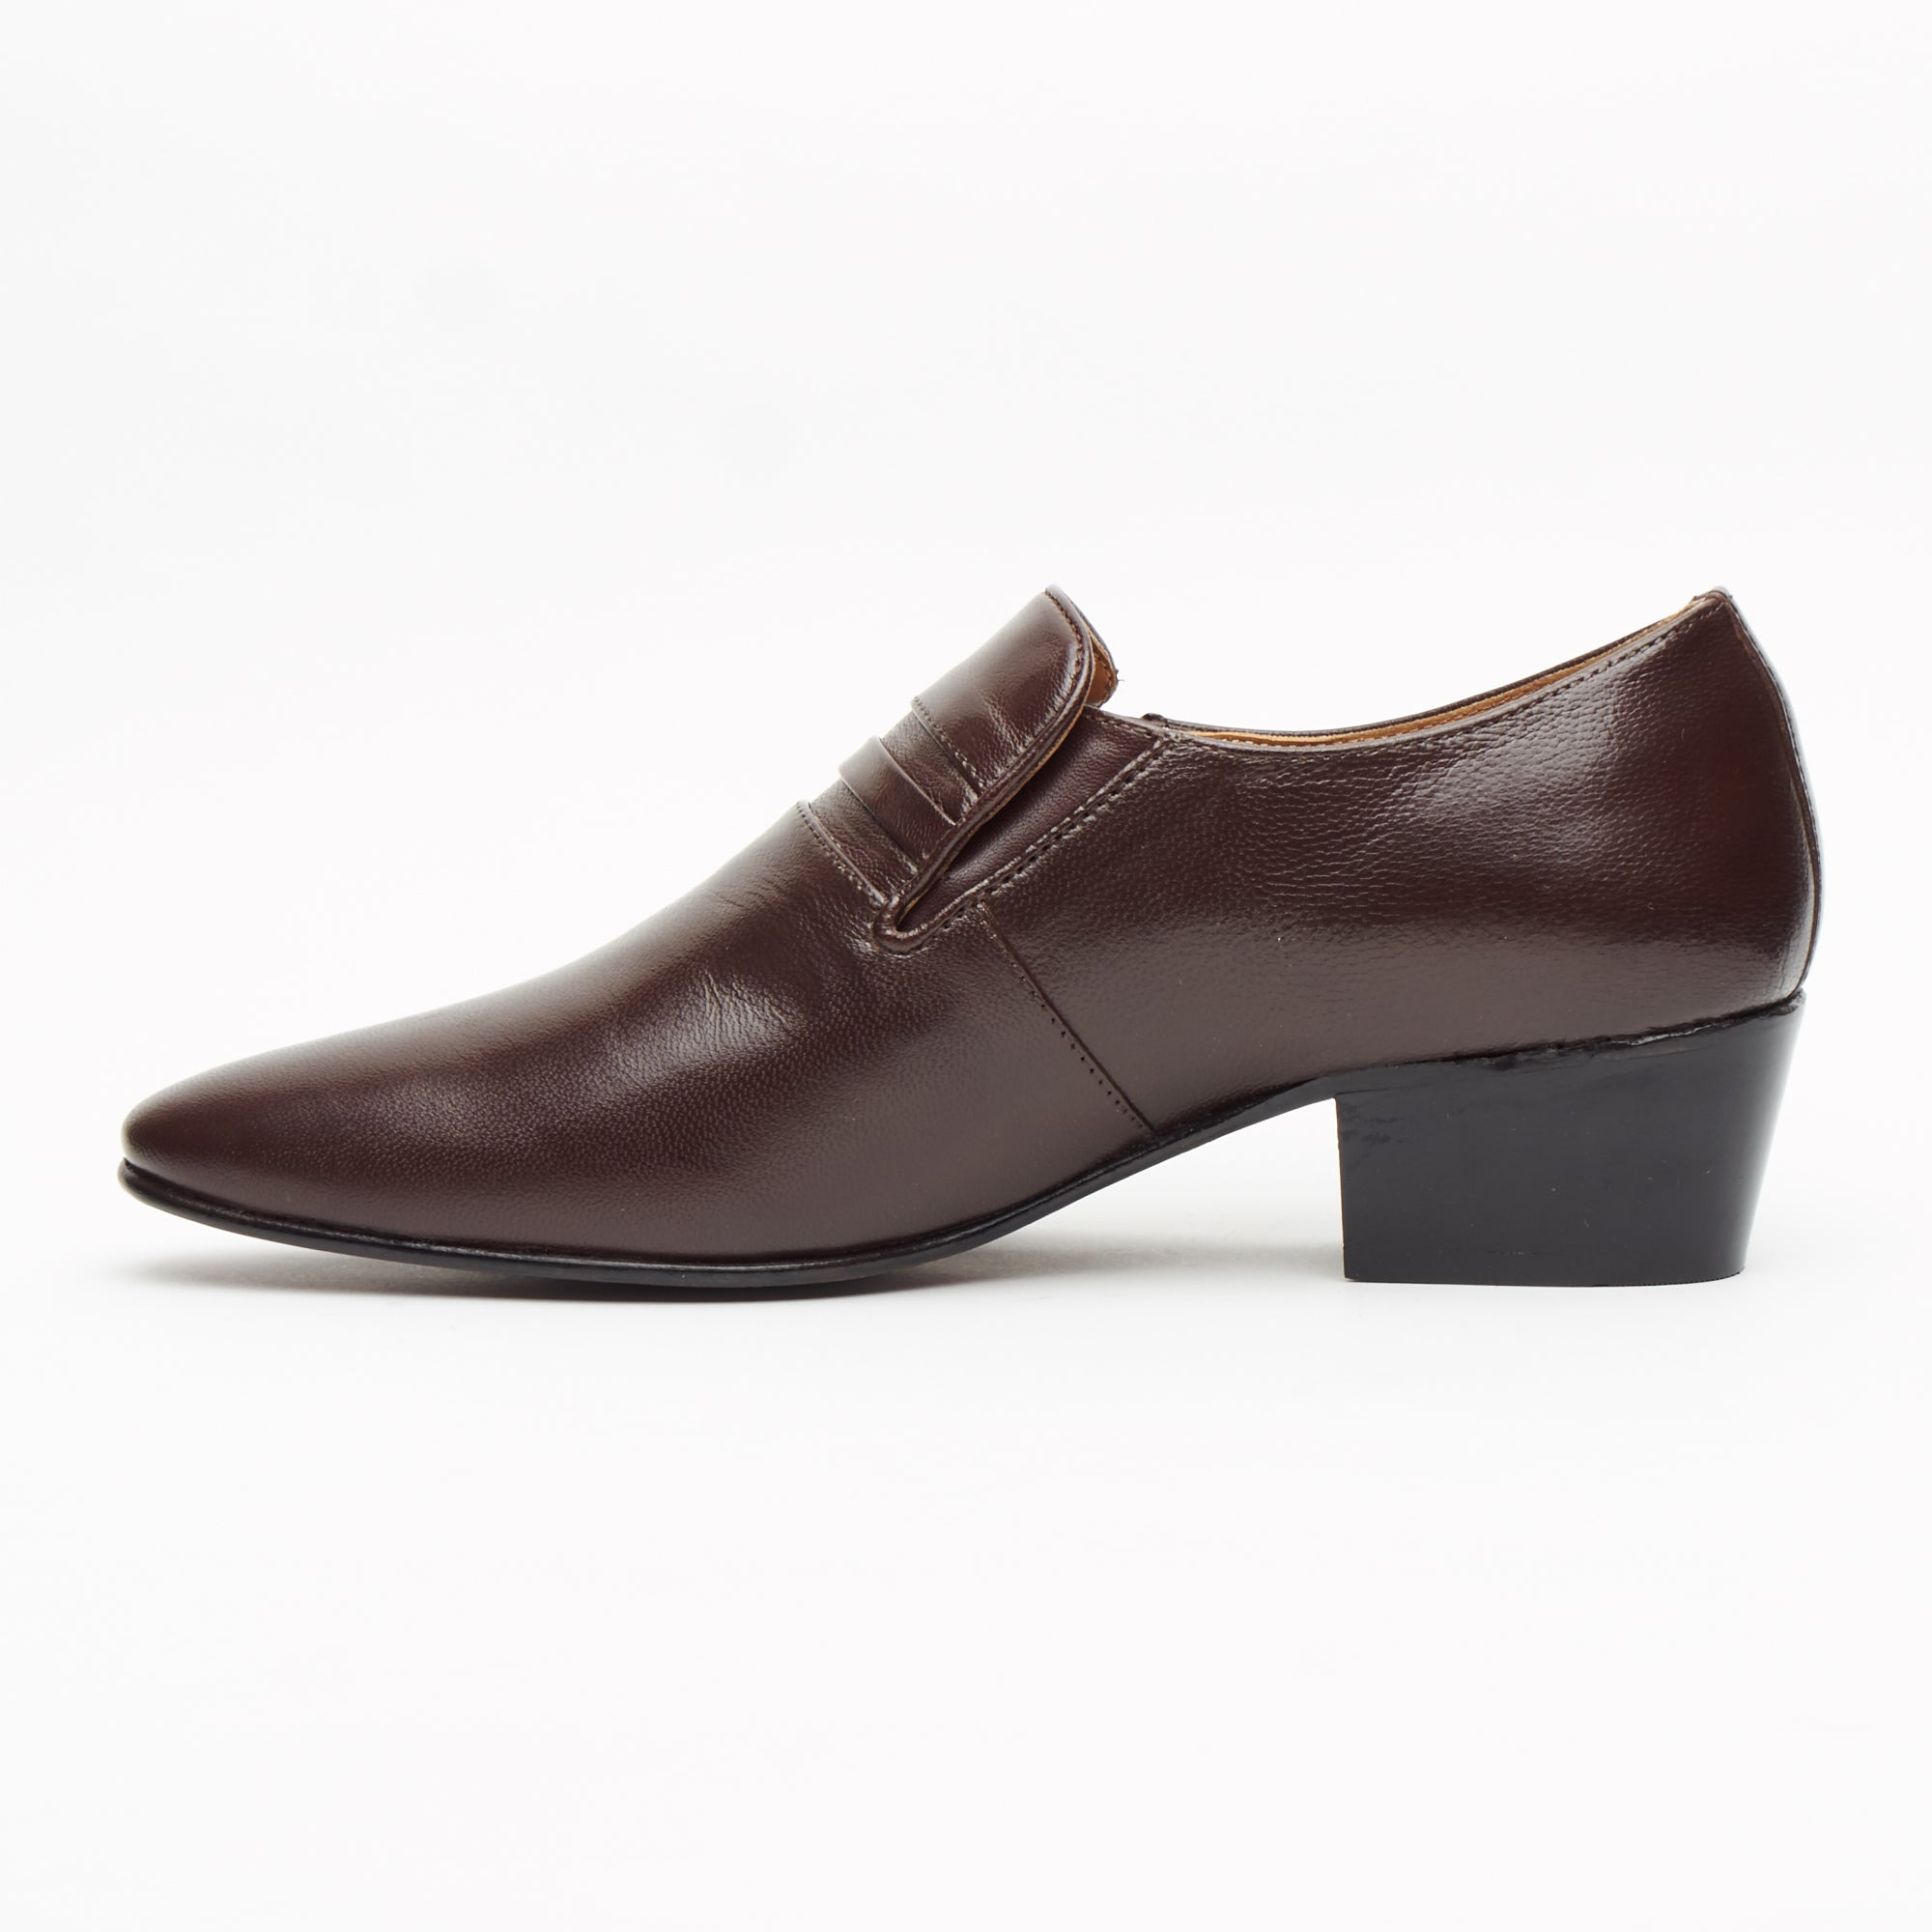 Mens Cuban Heel Leather Shoes - 29779 Brown